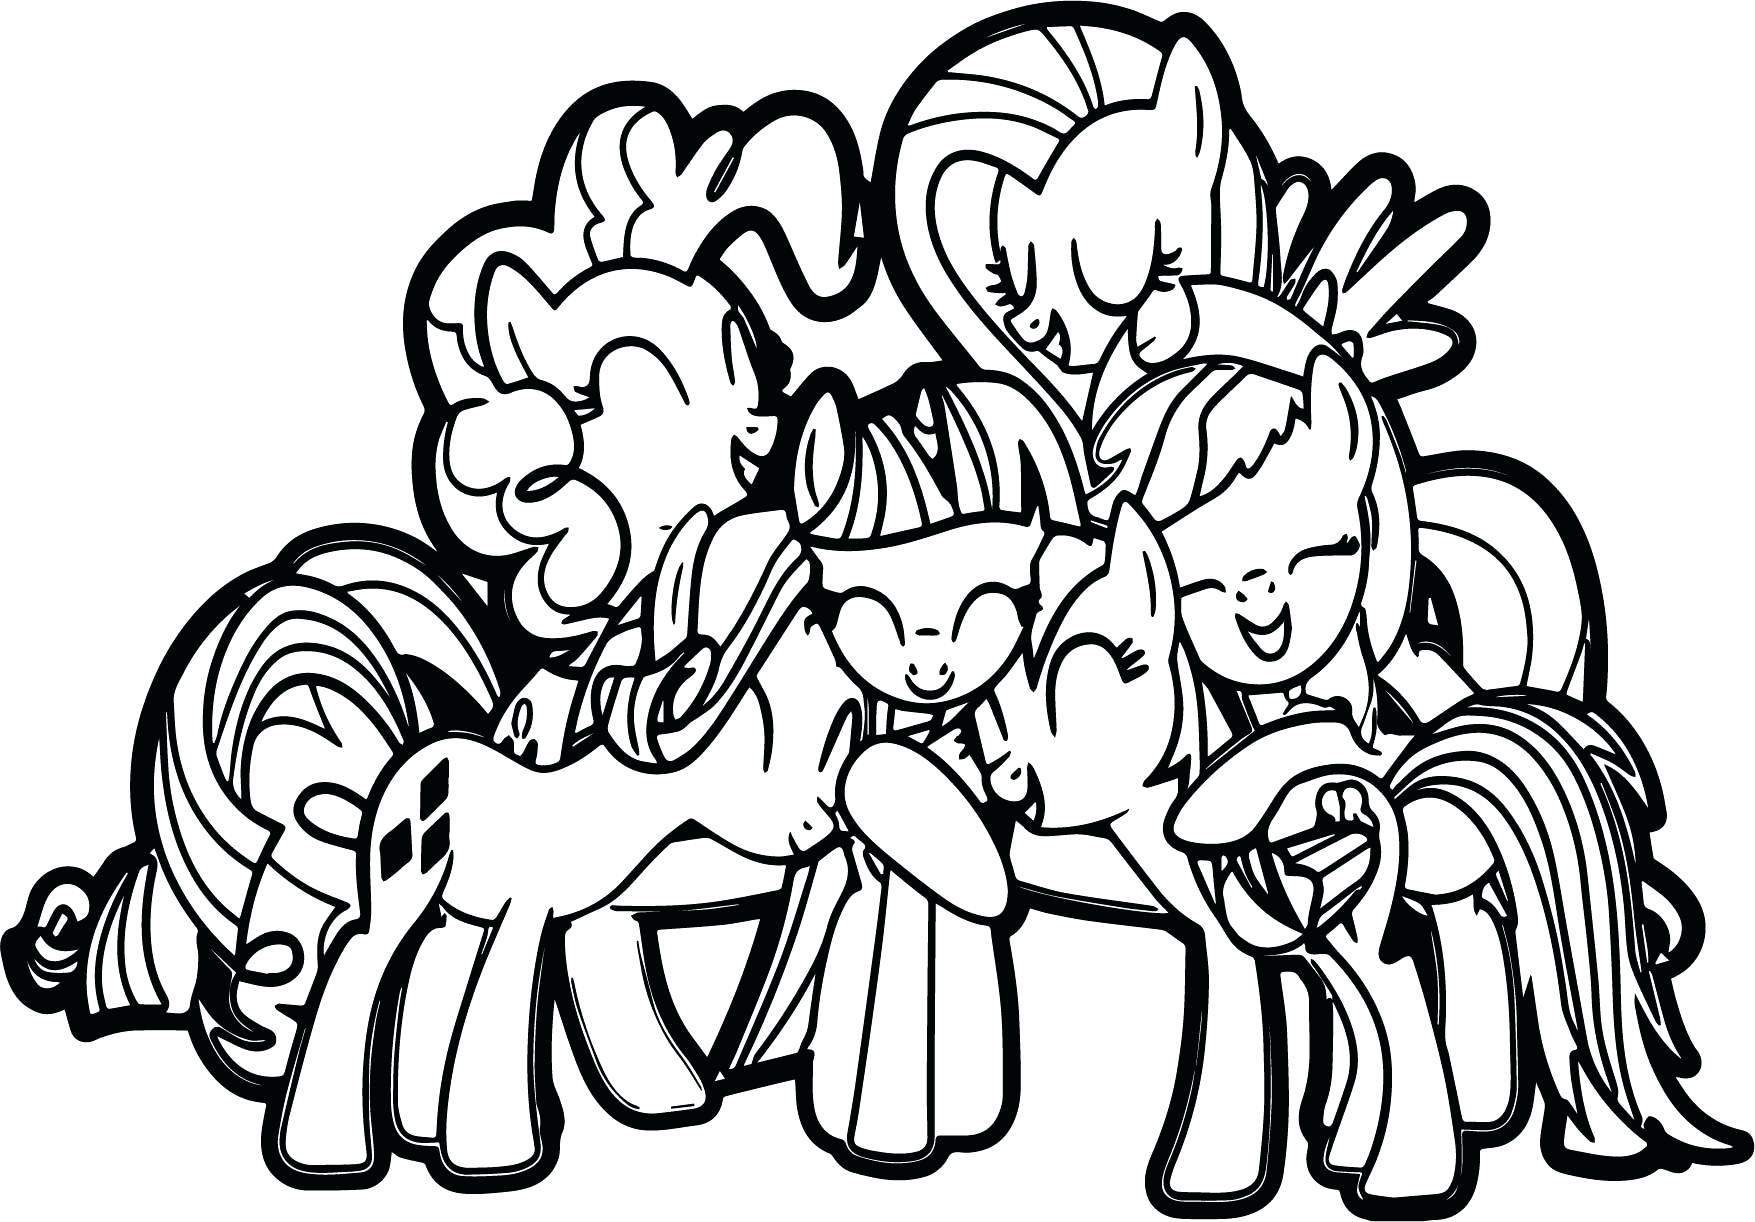 1755x1222 My Little Pony Friendship Group Hug Coloring Page Pokemon